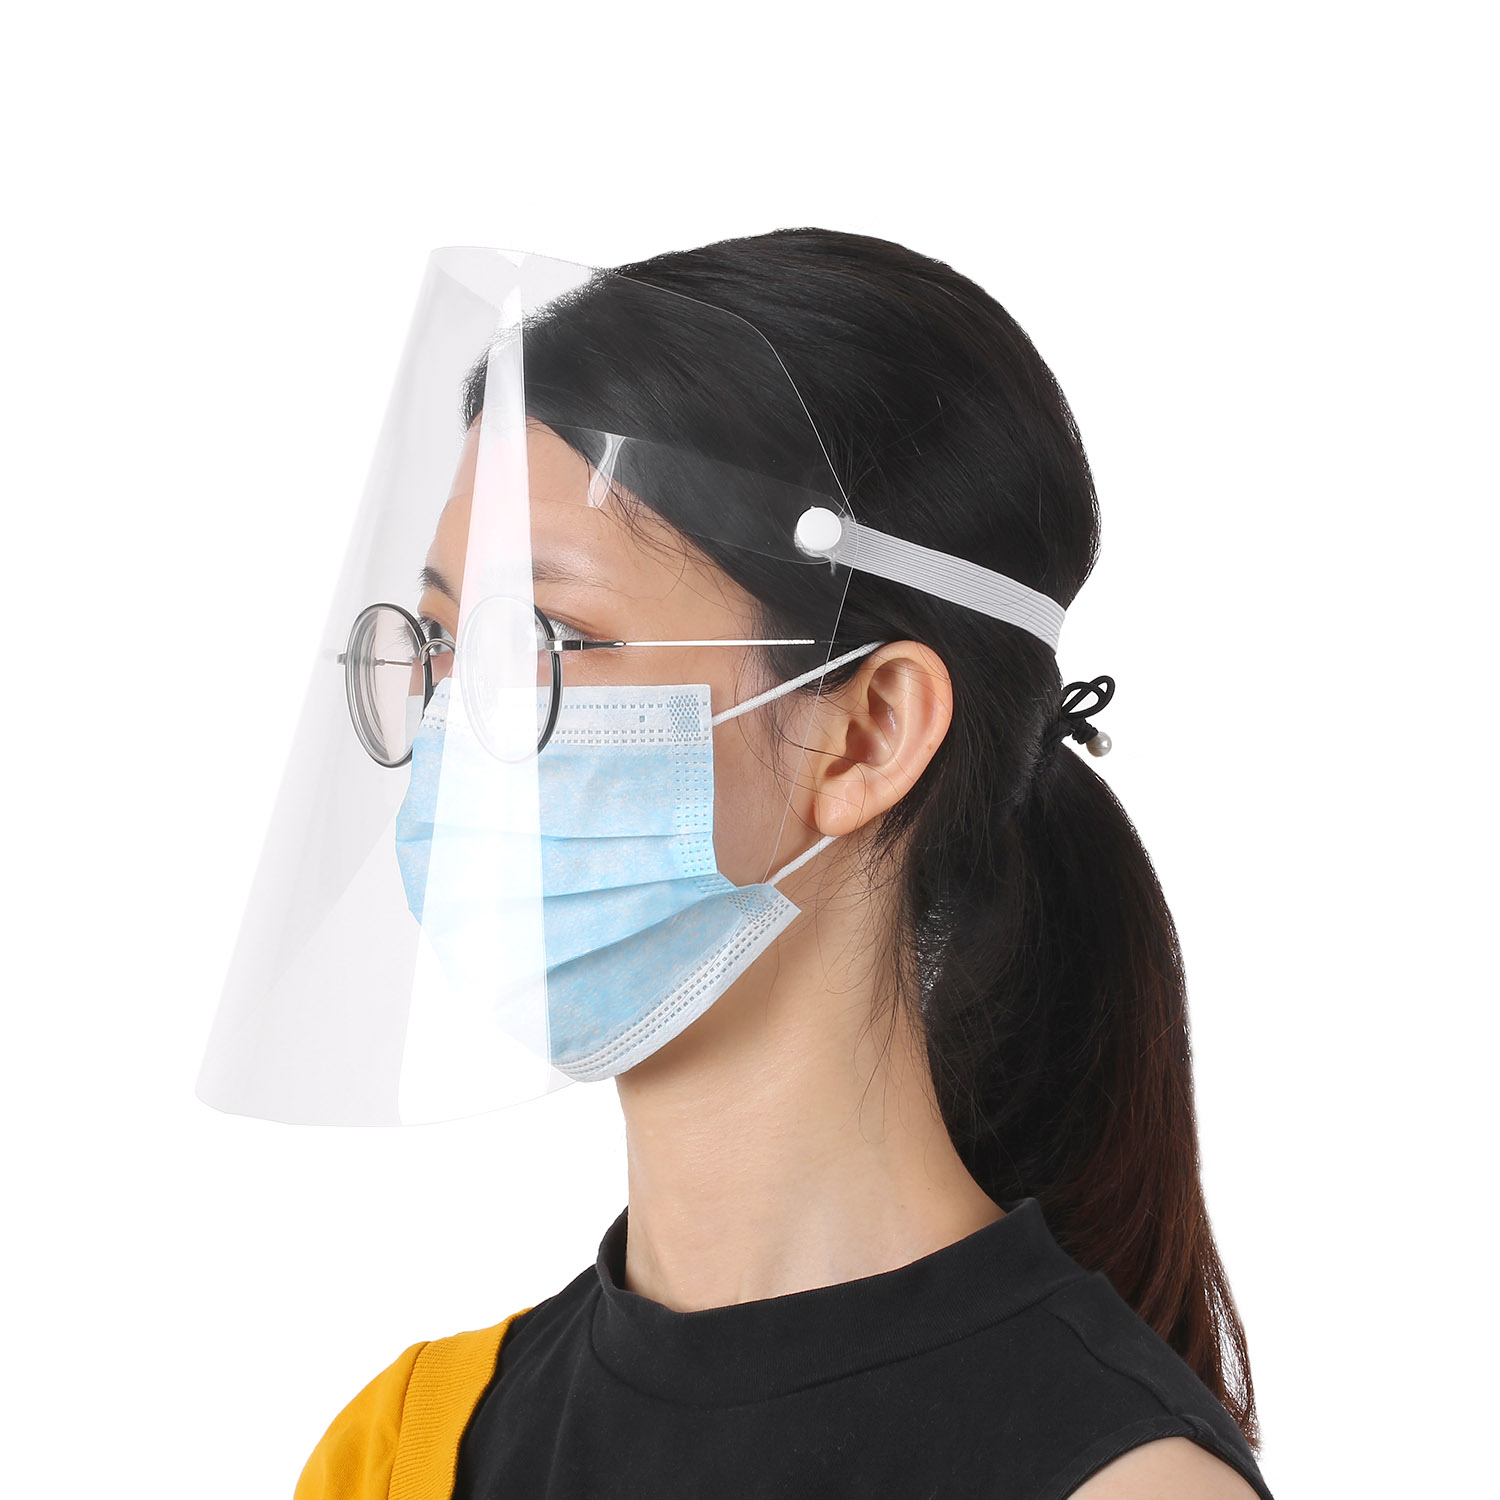 20pcs/lot Clear Face Cover with Adjustable Elastic Straps for Full Face Protection from Droplets/Virus